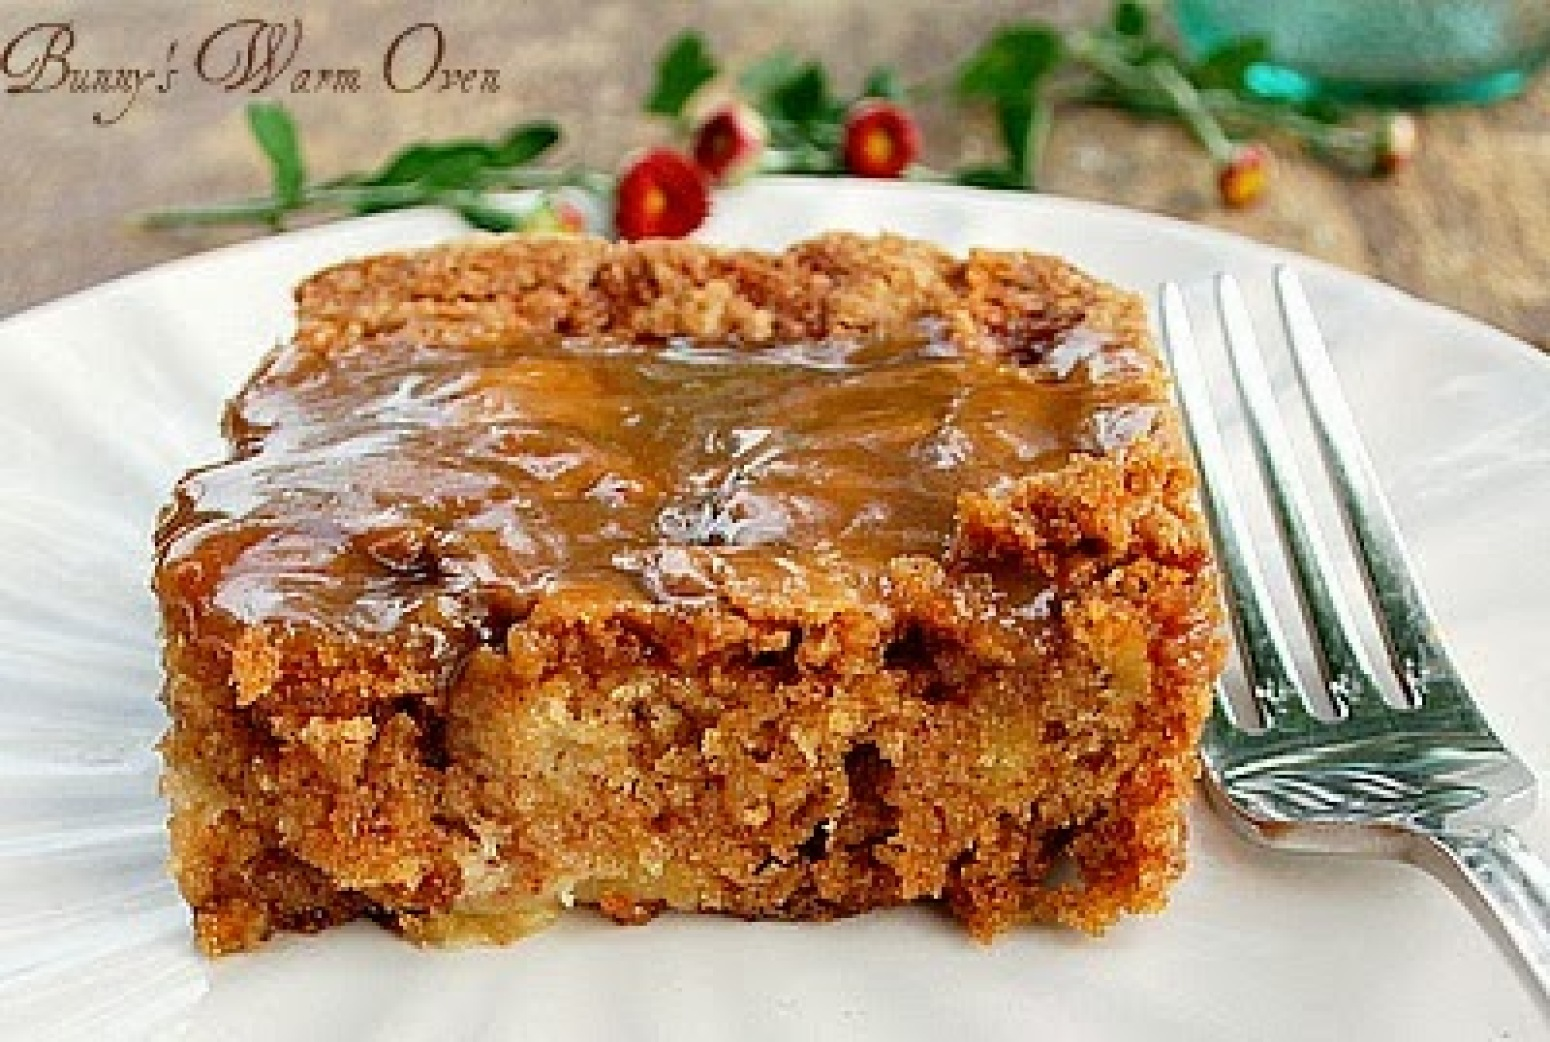 Mom's Best Apple Cake from Bunny's Warm Oven Recipe | Just ...